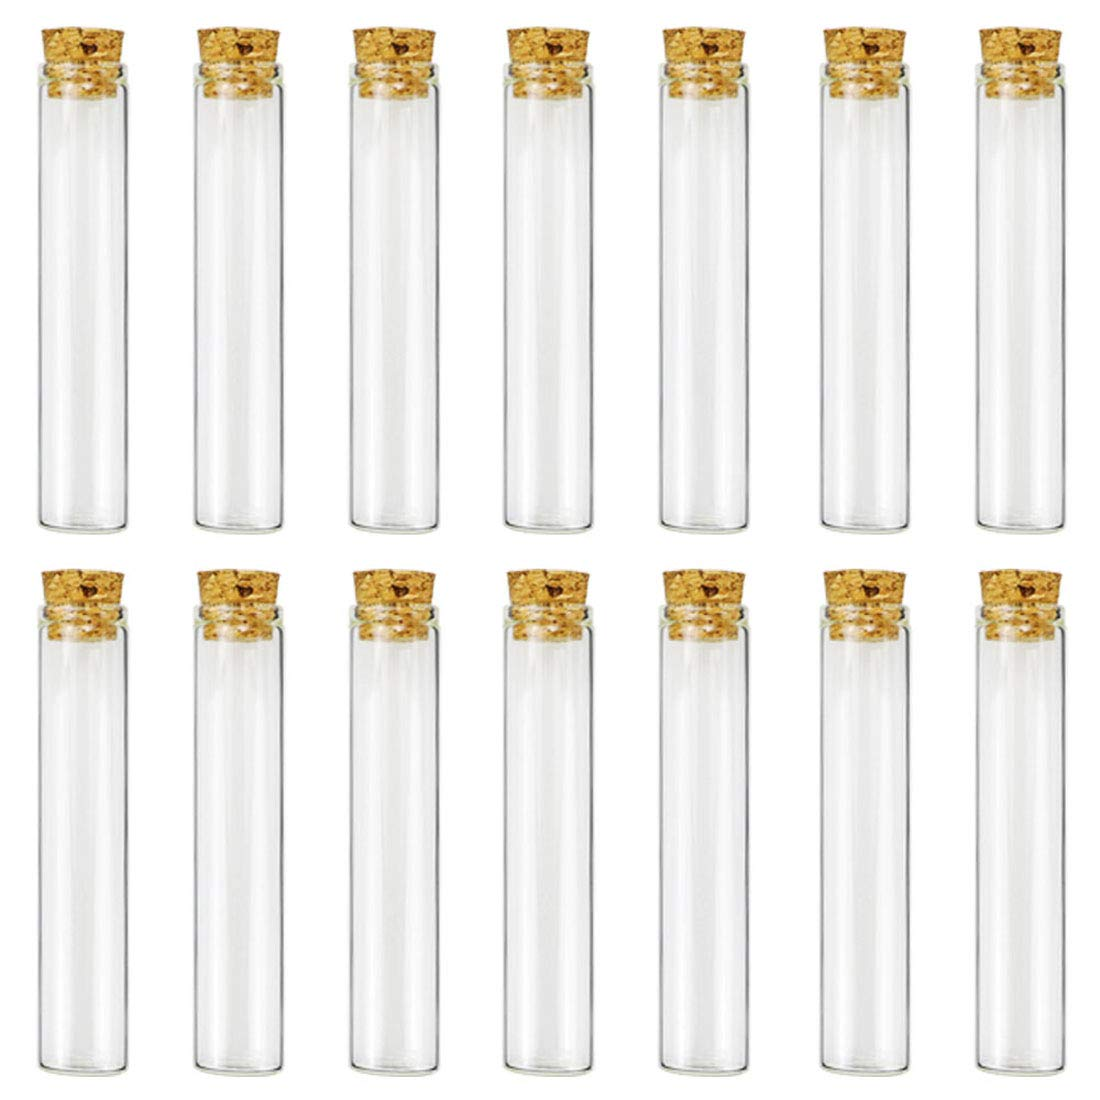 25ml Test Tubes Glass Bottles with Corks 20  x 100  mm, Pack Of 30  Superlele Pack Of 30 Superlele Superlady